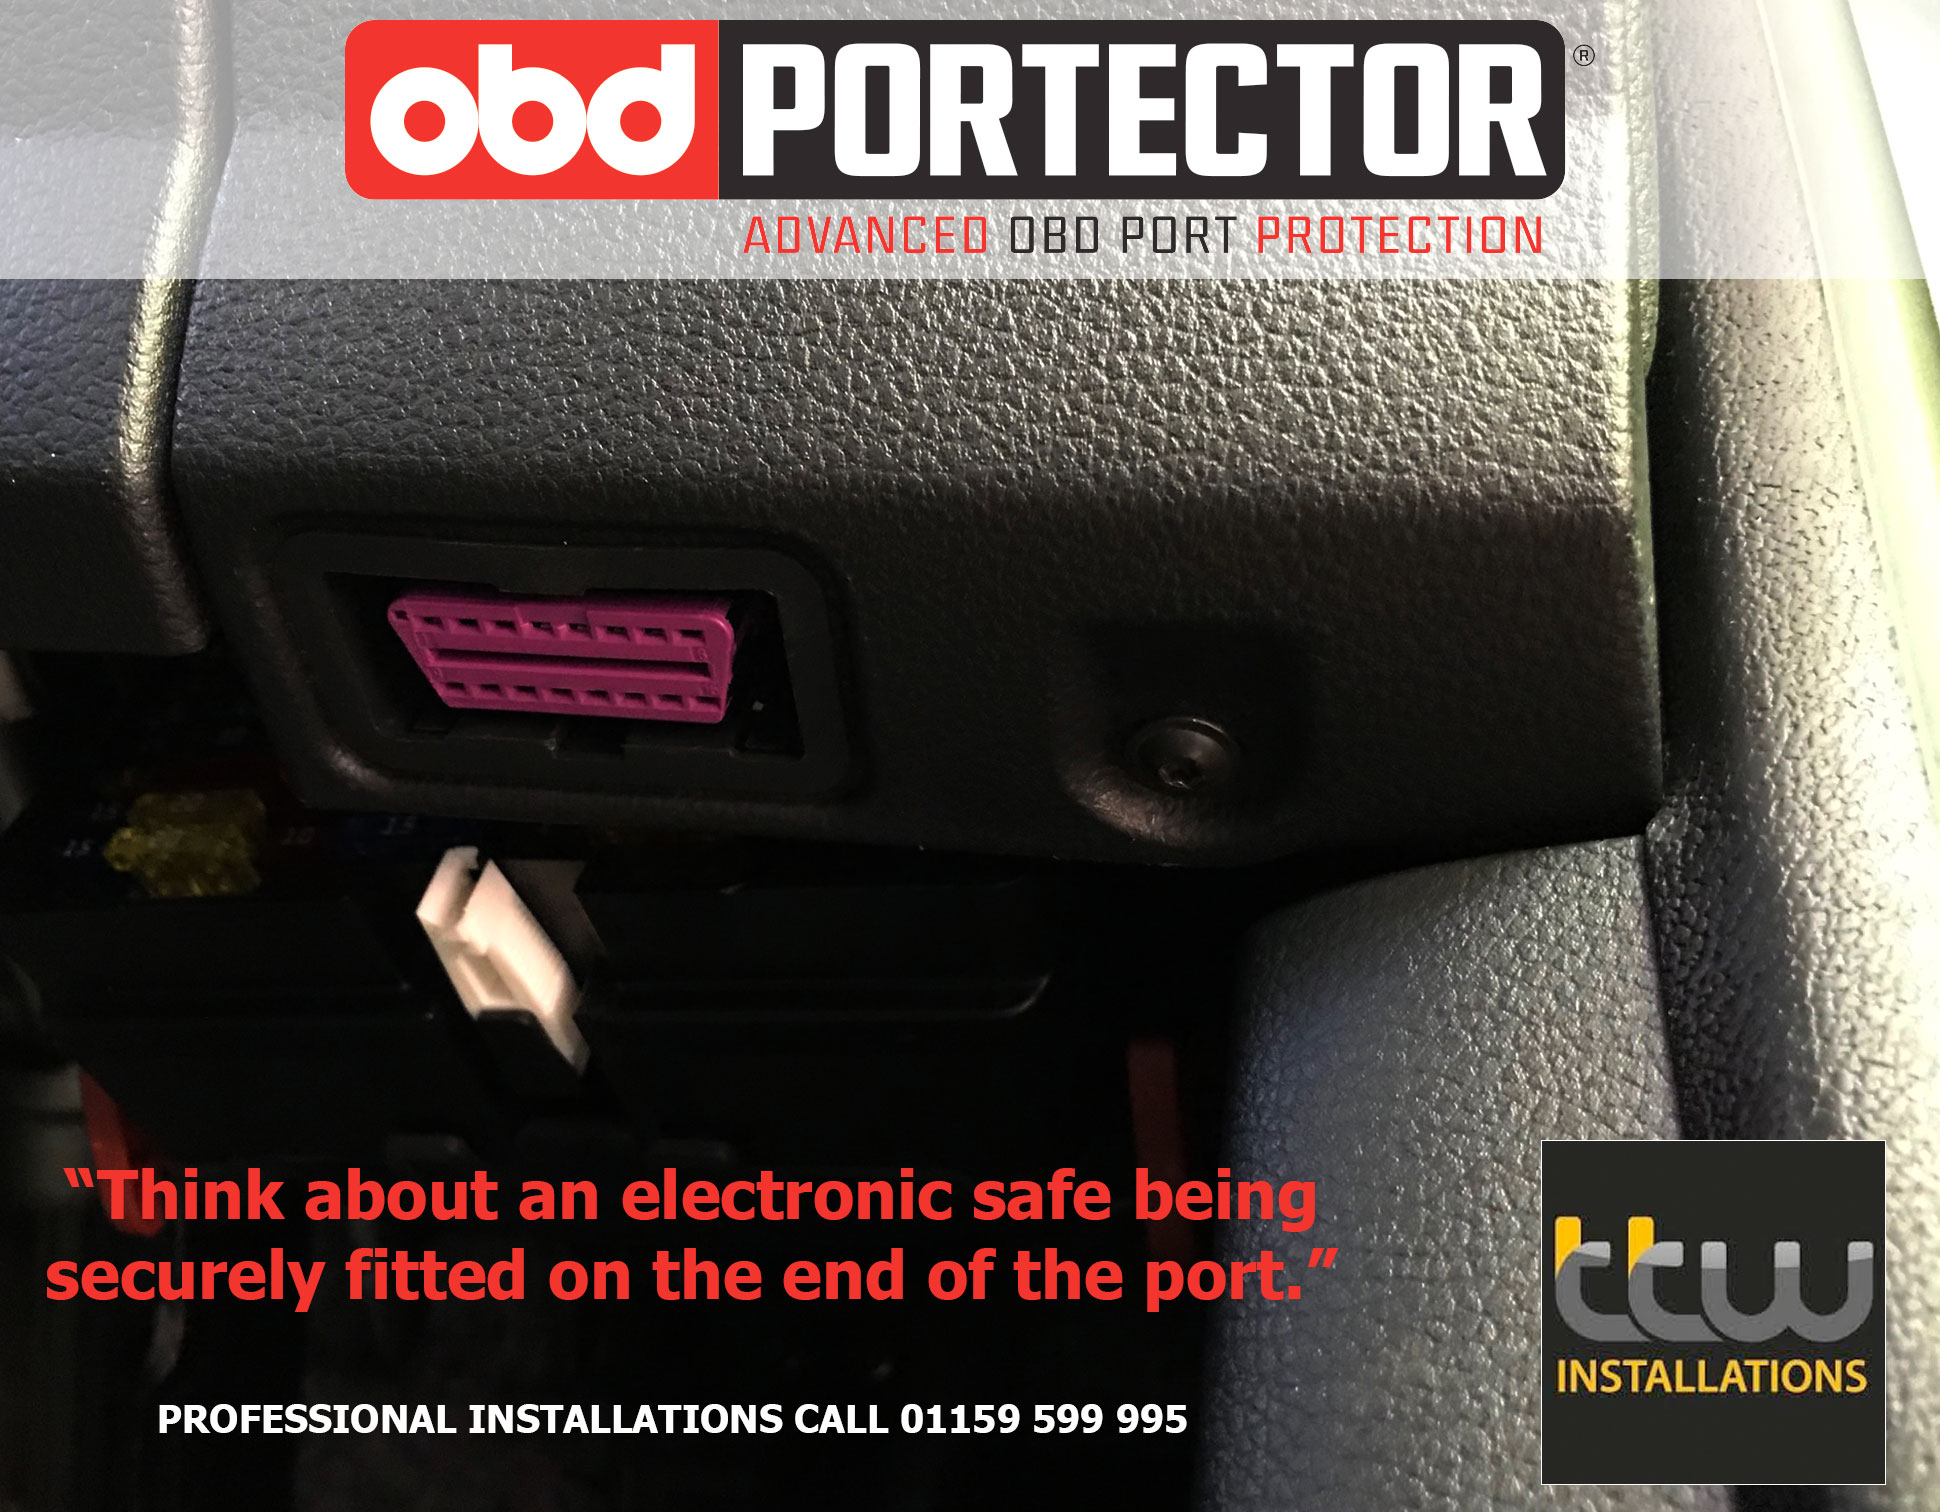 obd Portector supply & Installations - TTW Installations